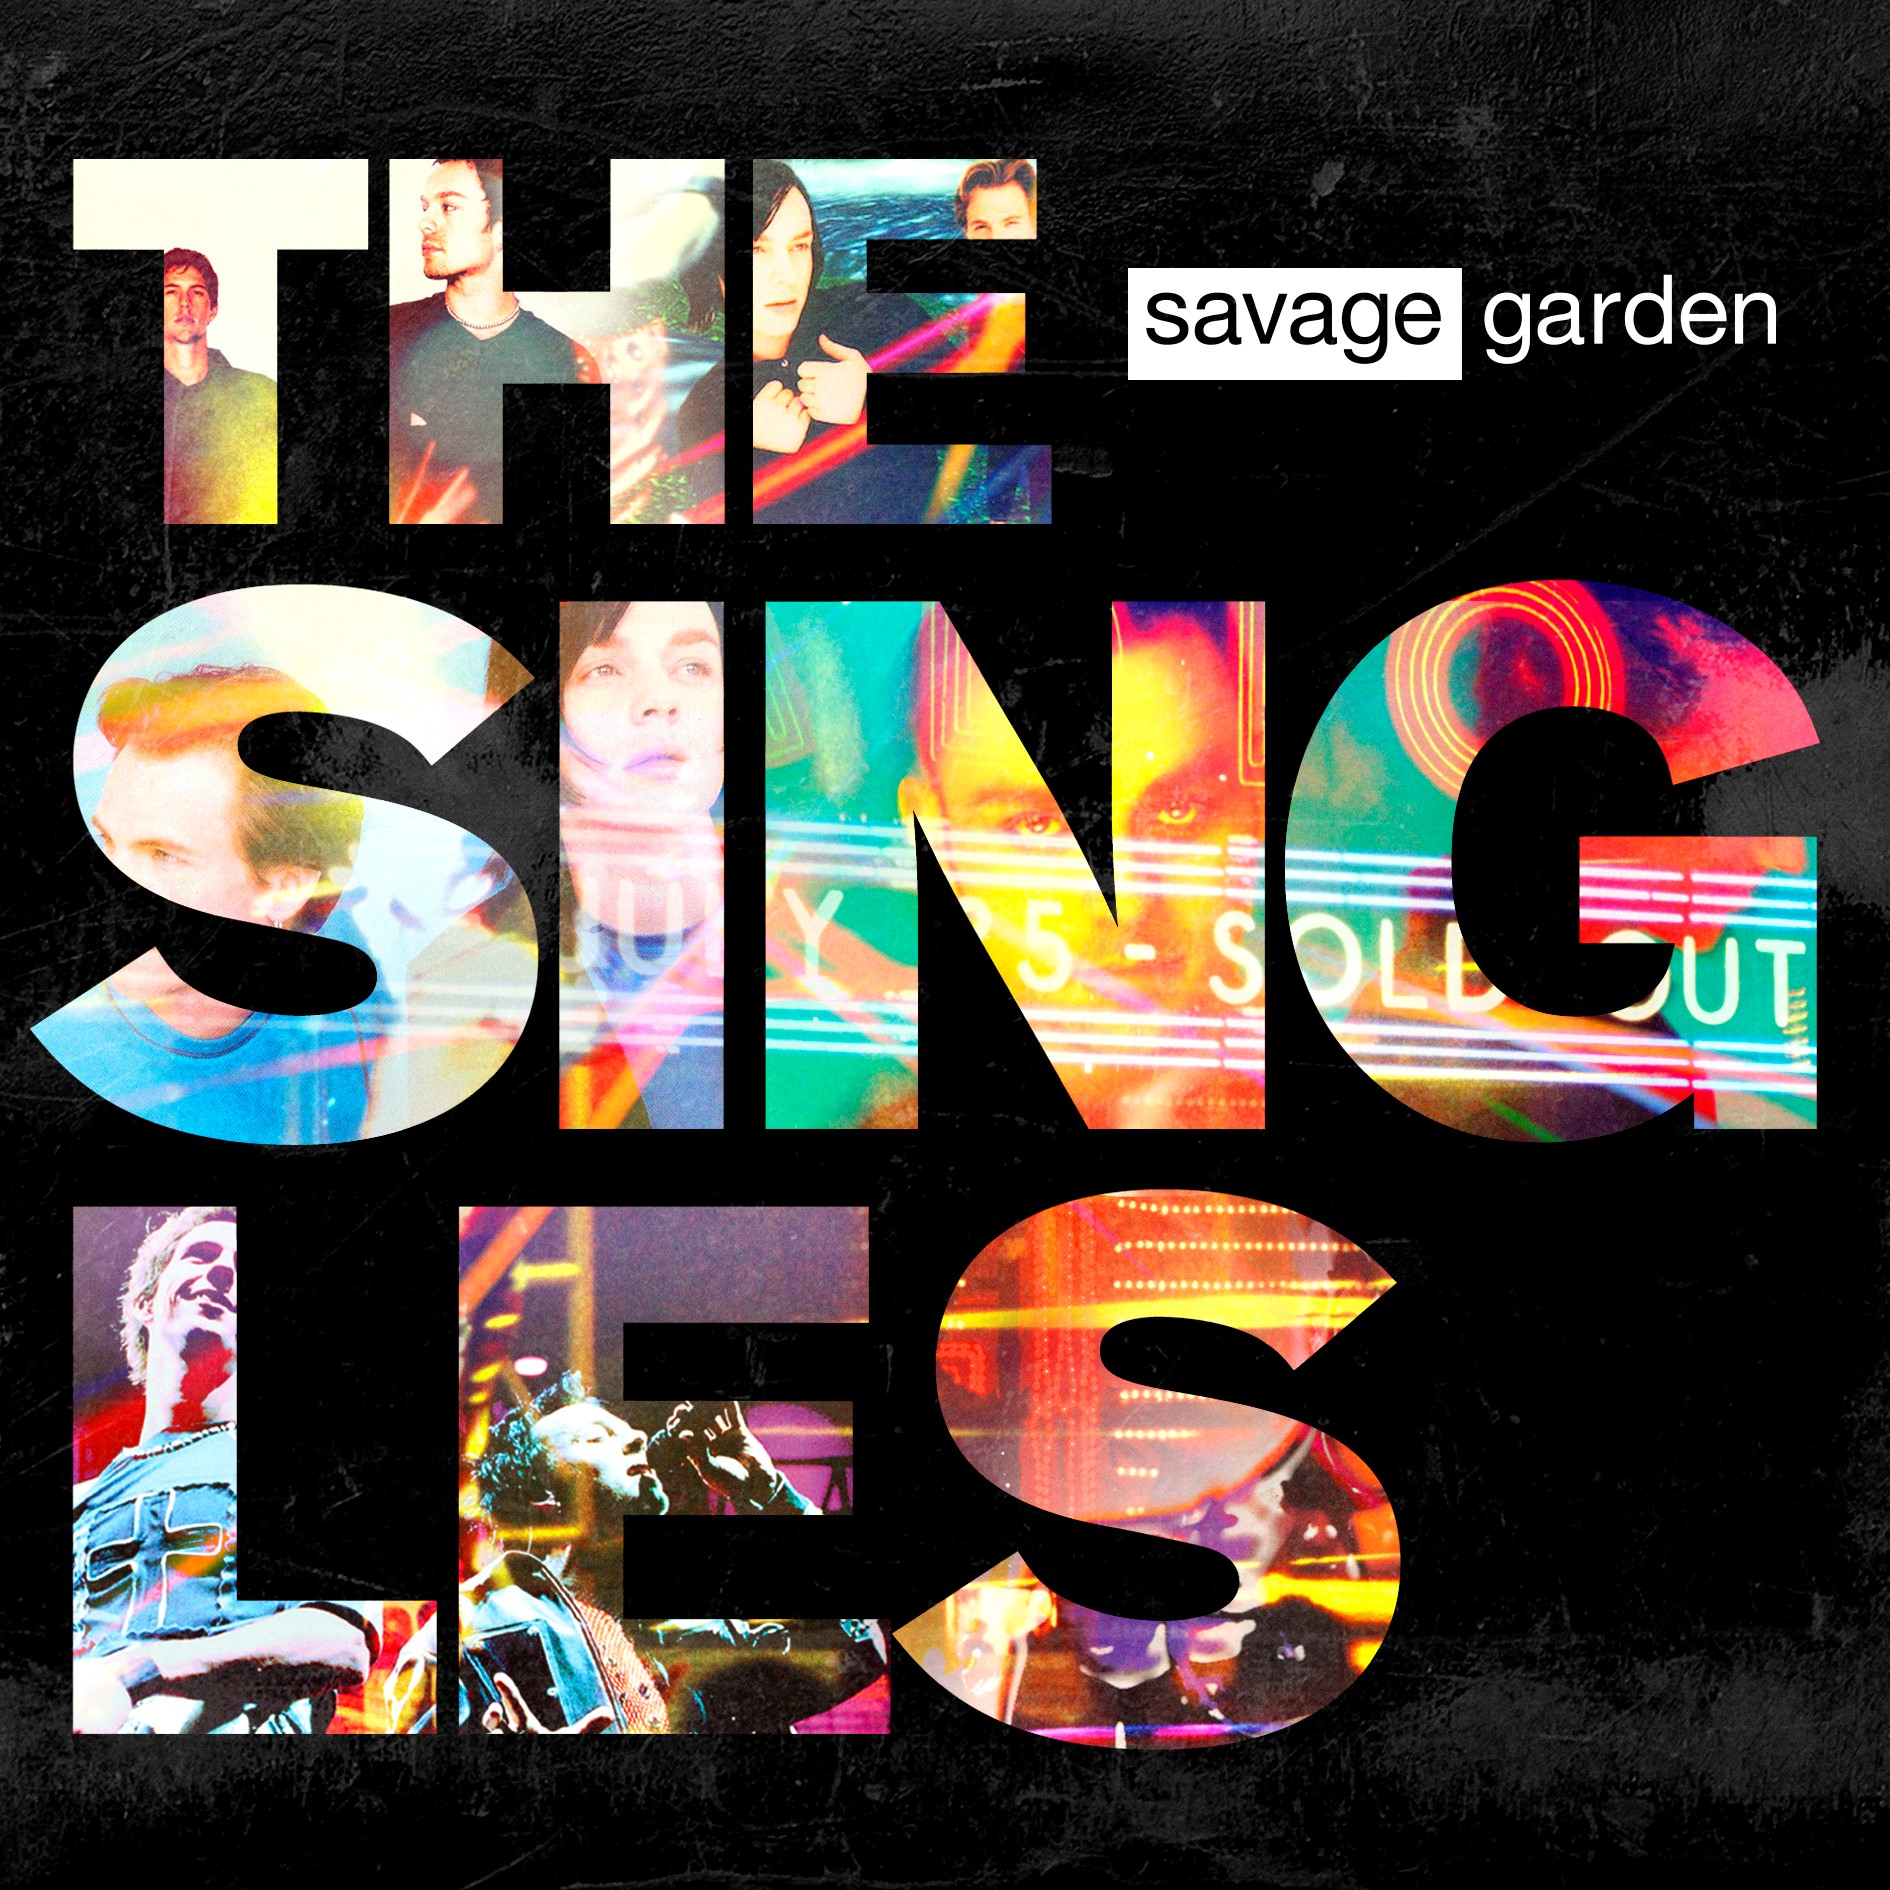 Savage Garden - The Future Of Earthly Delites